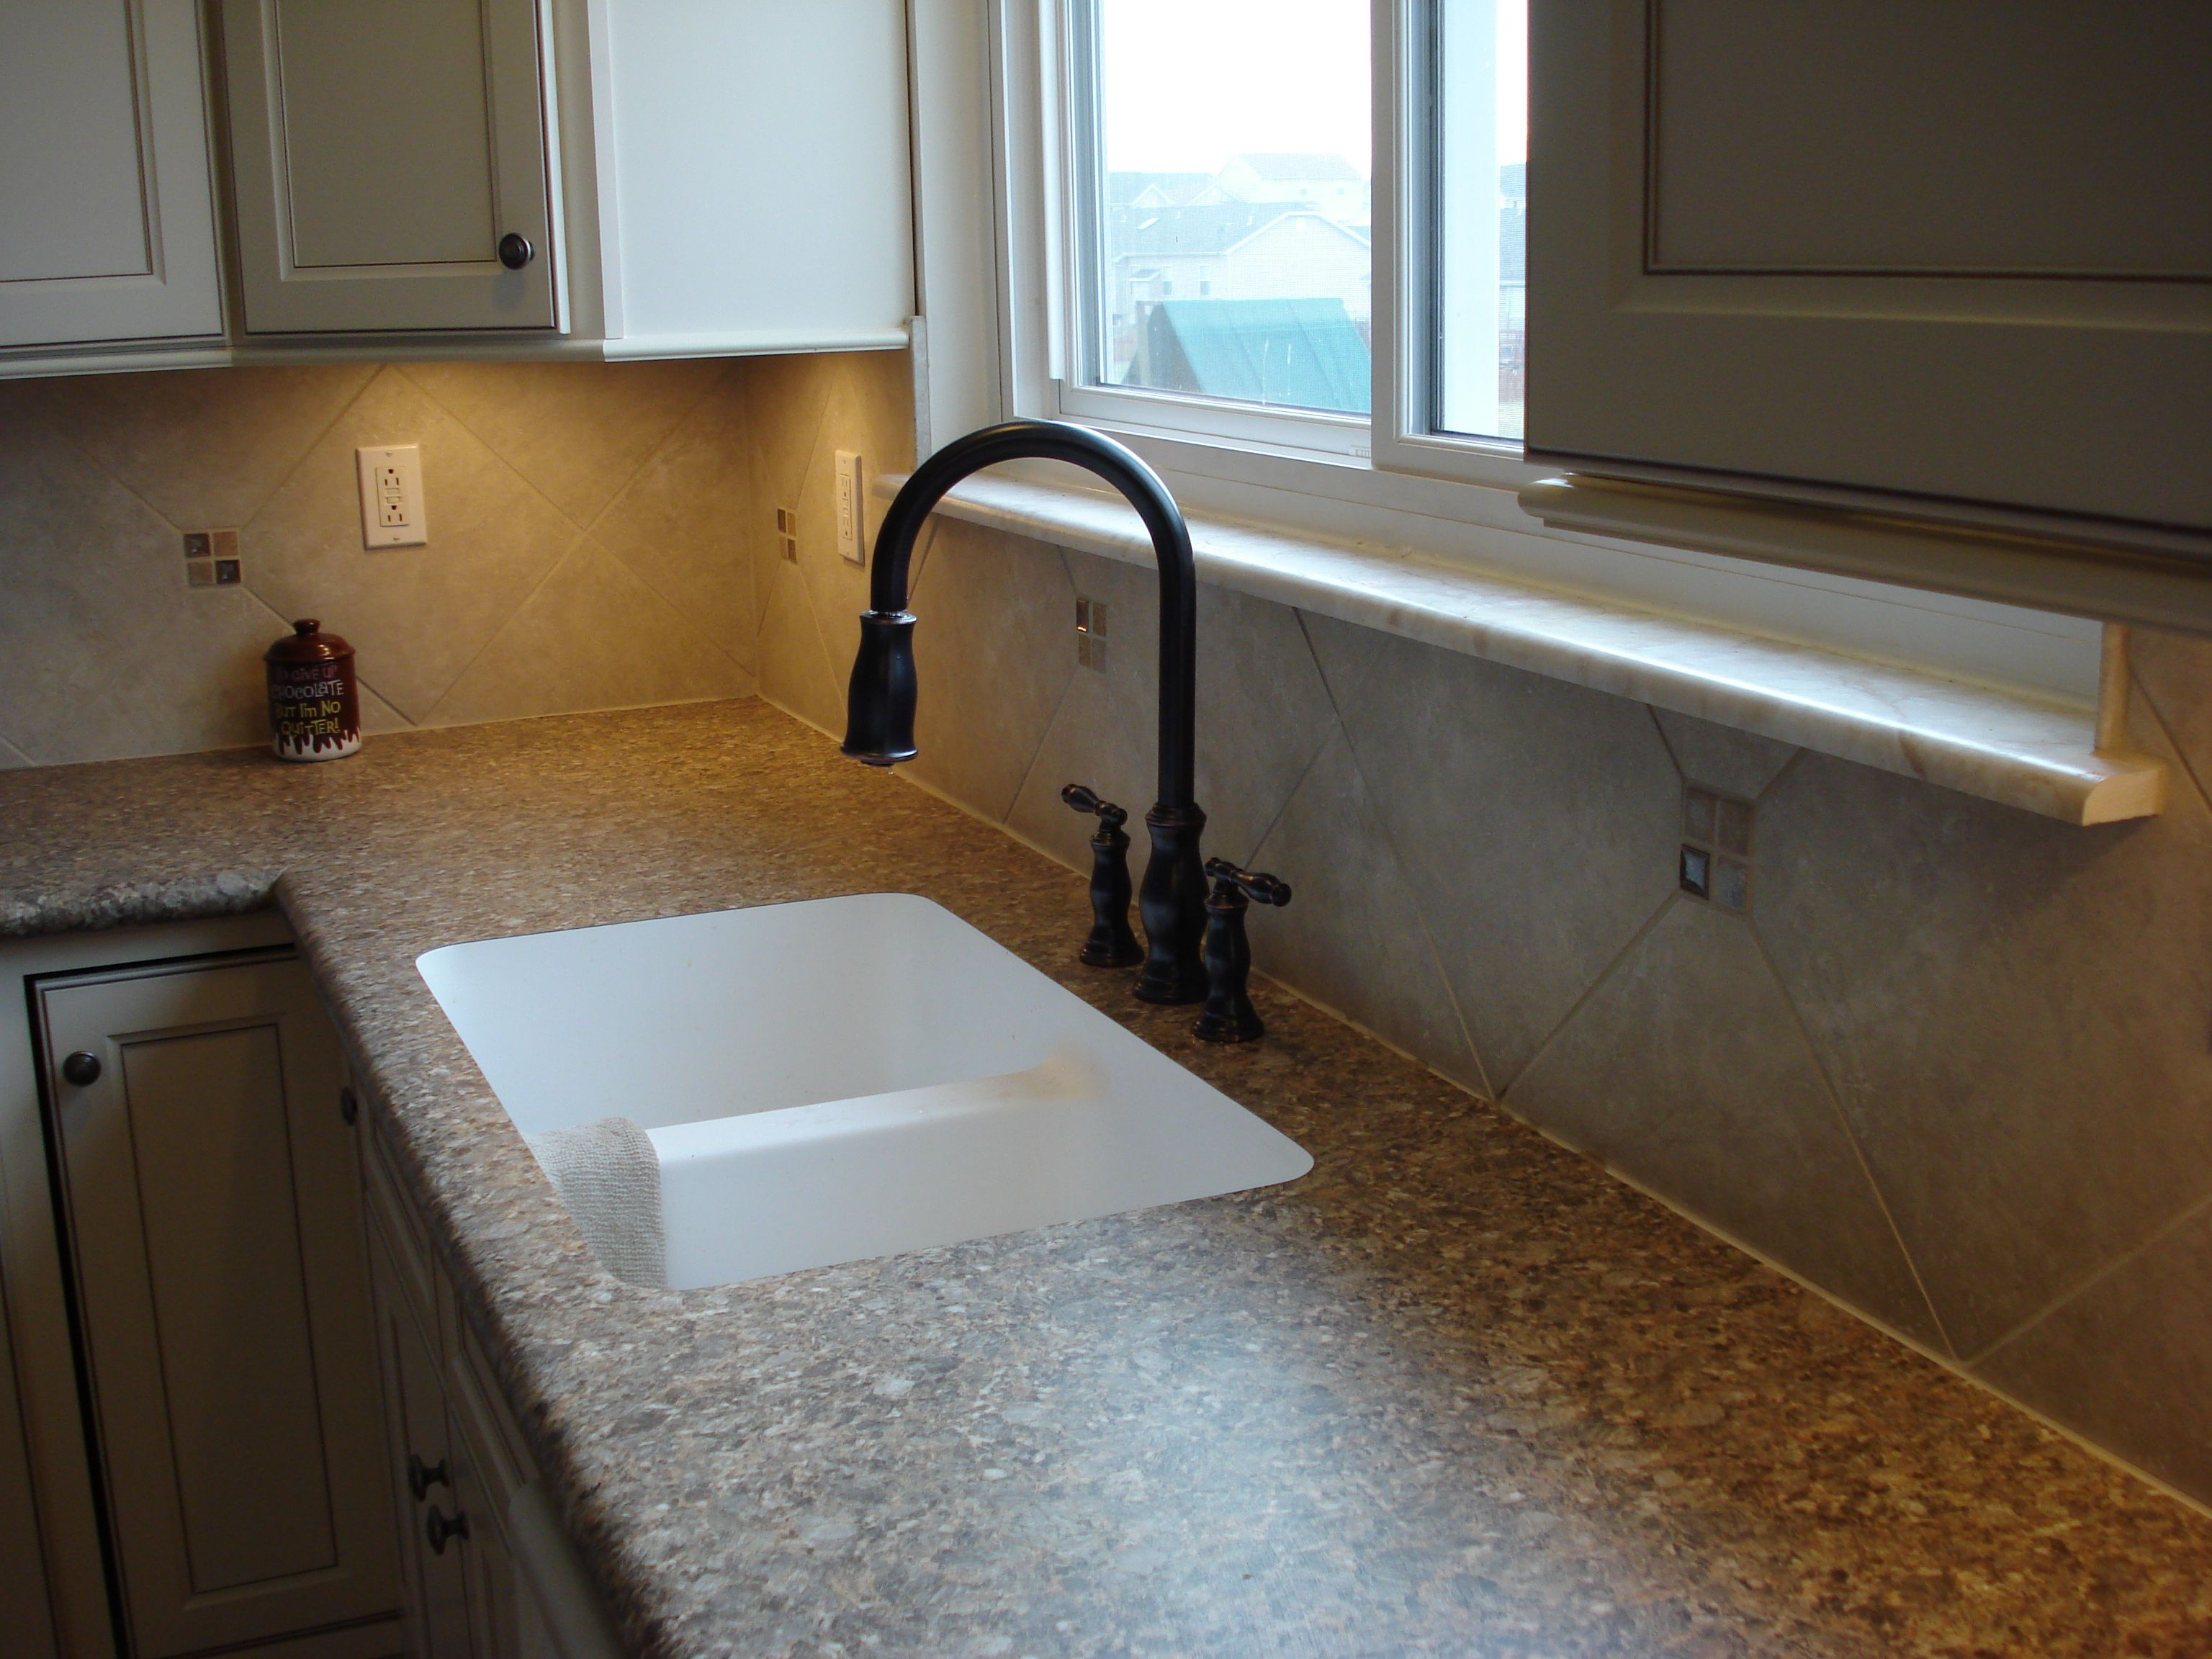 12 X 12 Tile Backsplash With Inserts Edge Sink Installed In A Laminate Countertop Backsplash Countertops Sink Countertop